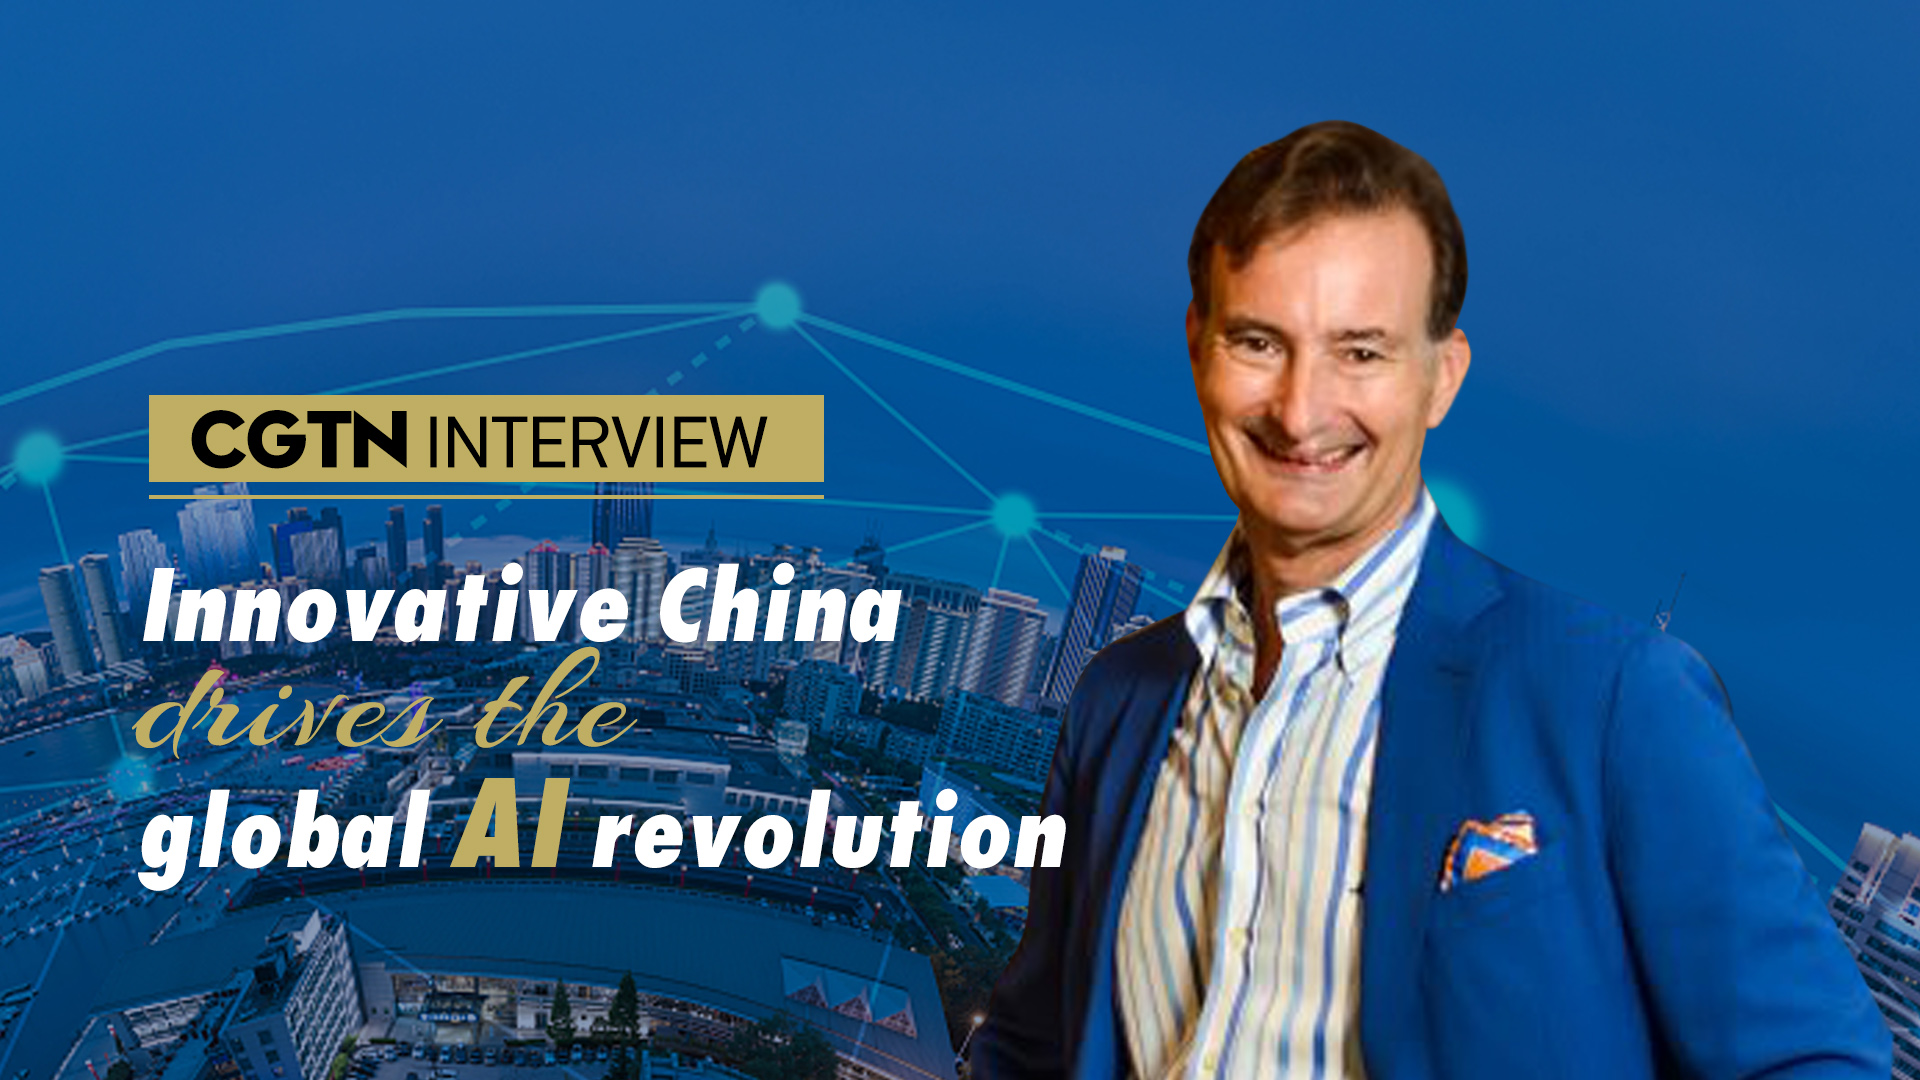 CGTN Interview: Innovative China drives the global AI revolution